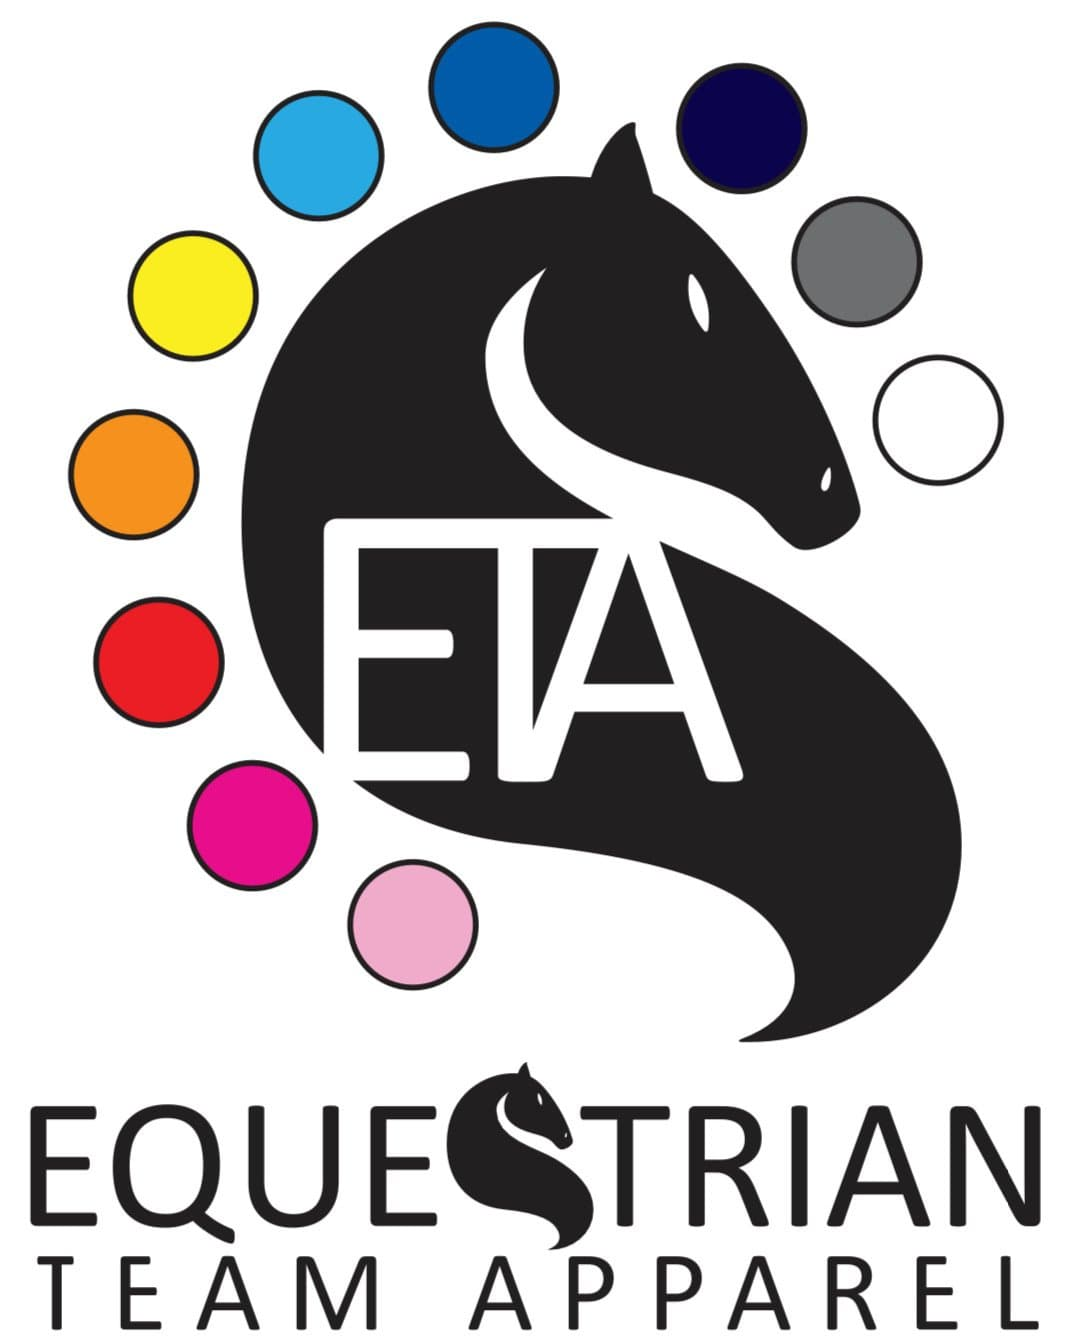 Equestrian Team Apparel Gift Card ETA Gift Card equestrian team apparel online tack store mobile tack store custom farm apparel custom show stable clothing equestrian lifestyle horse show clothing riding clothes horses equestrian tack store